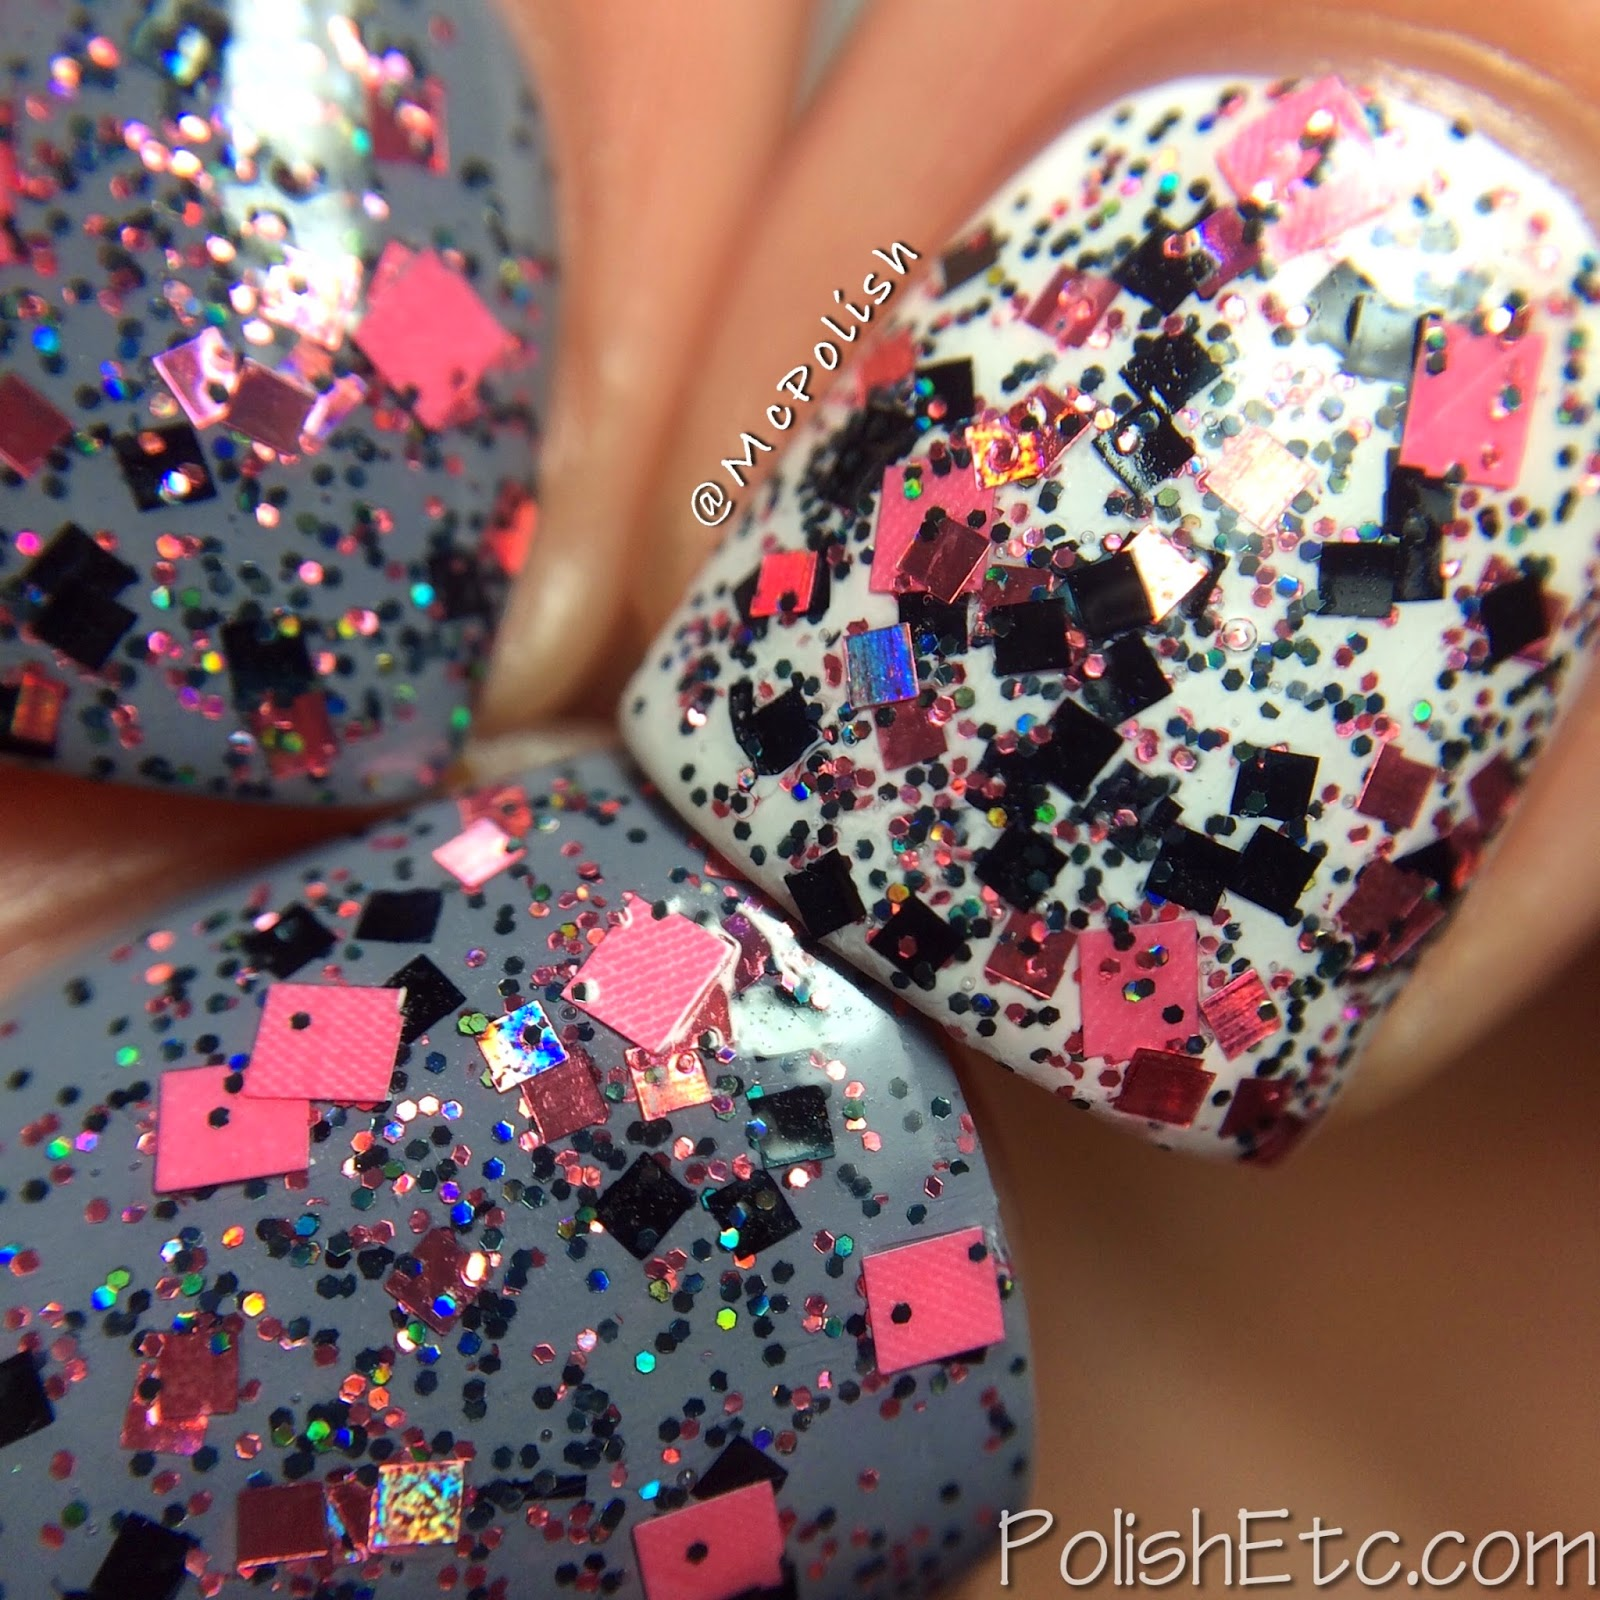 Nayll custom nail polishes - McPolish - Krissy - Macro